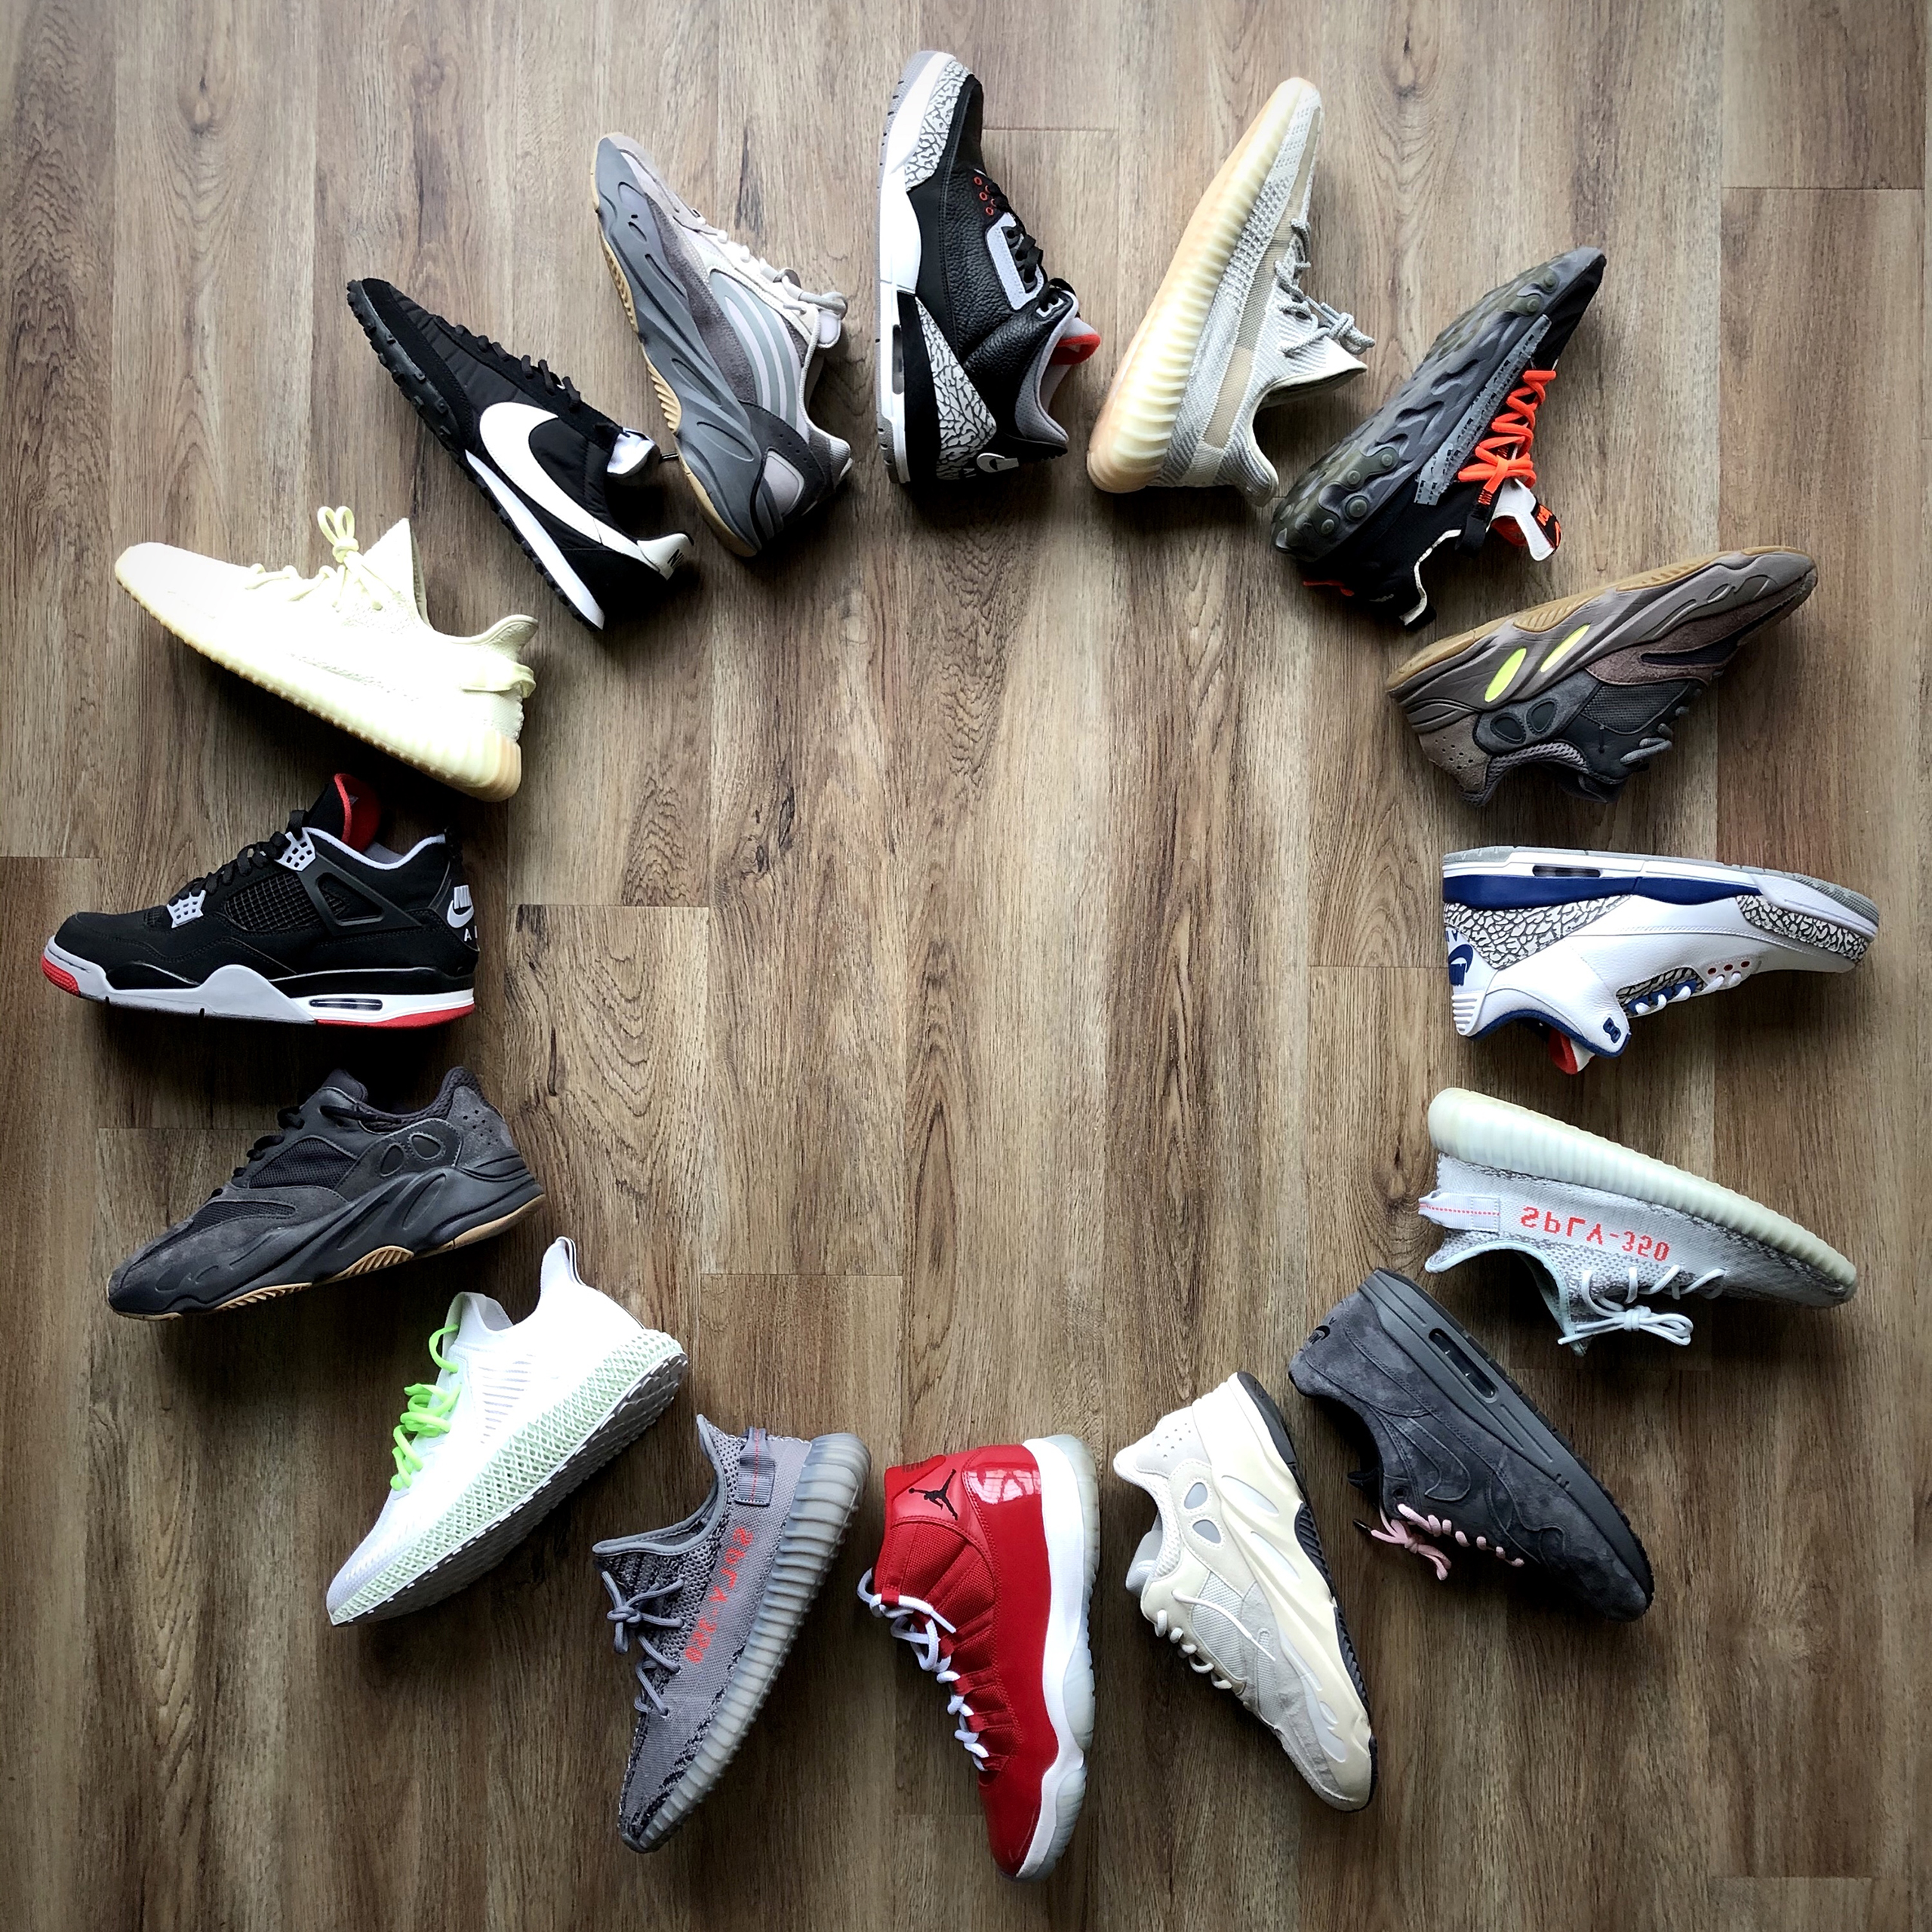 yeezy collection 2019